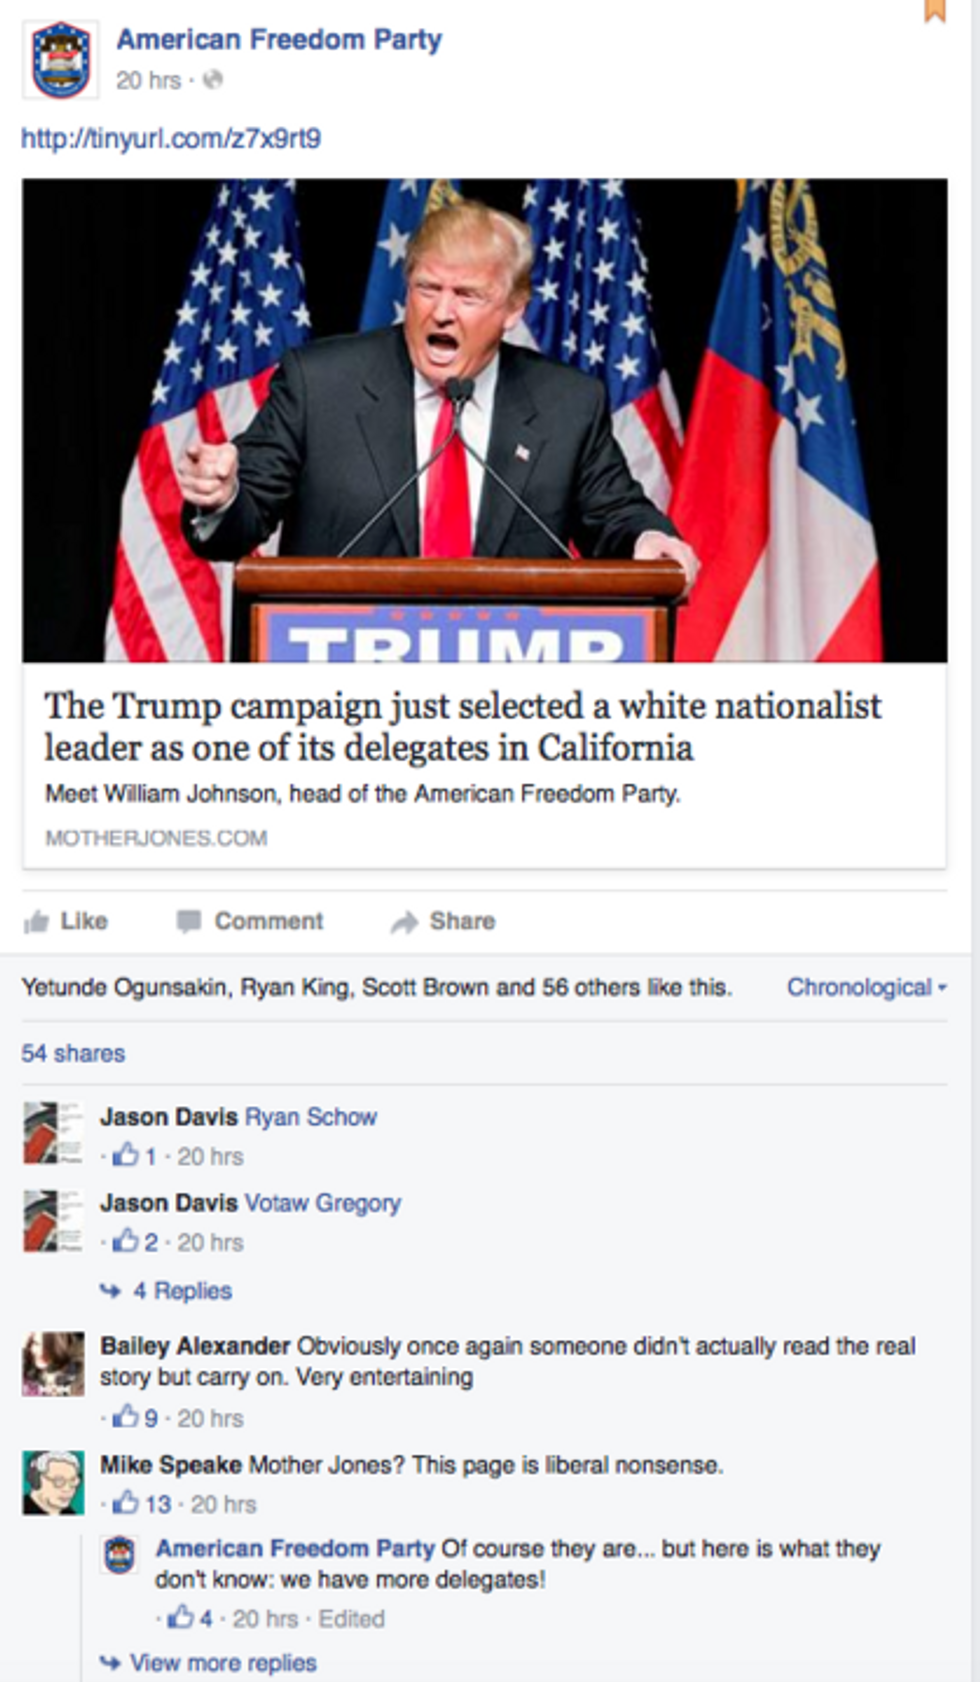 Screen capture of American Freedom Party from Mother Jones that has since been taken down.